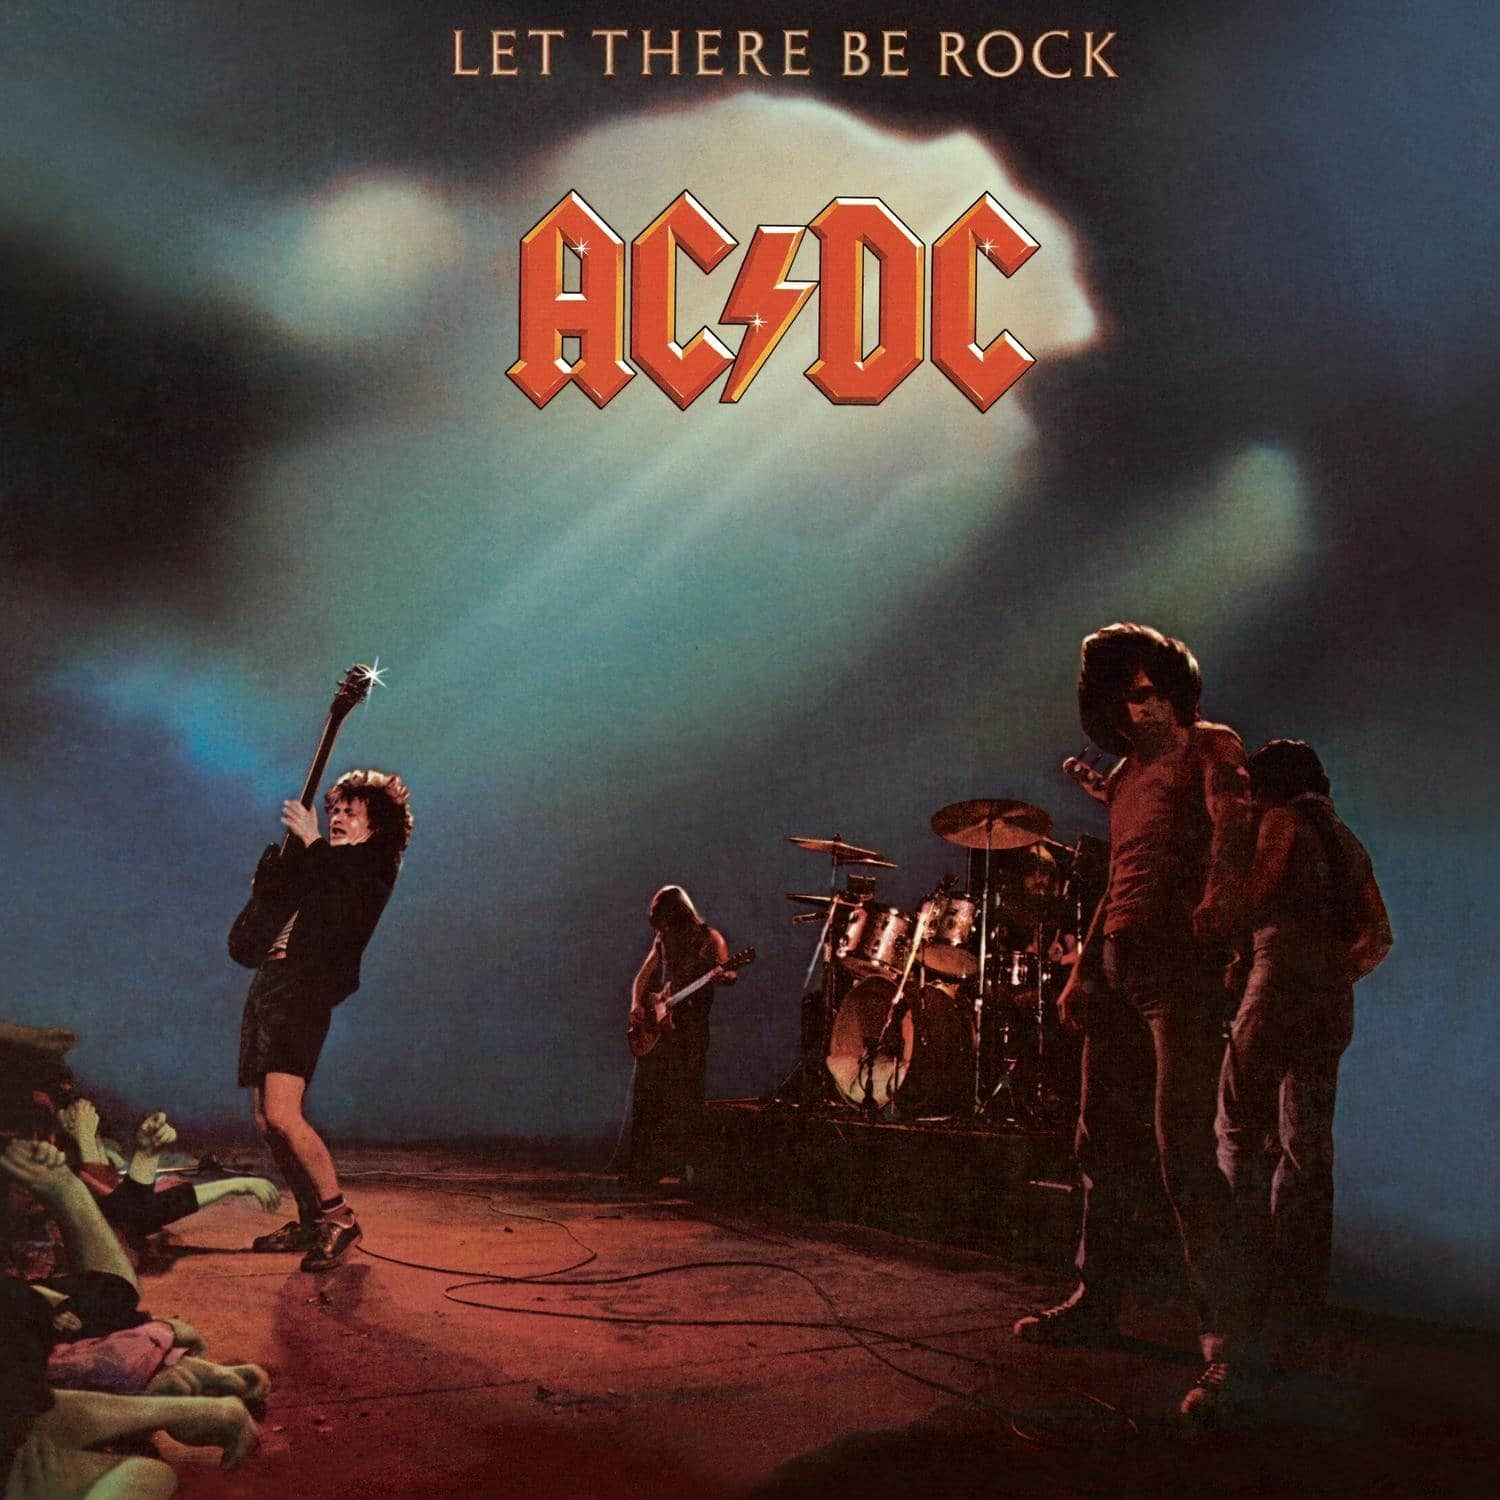 ACDC Let There Be Rock, vinyl $12.01